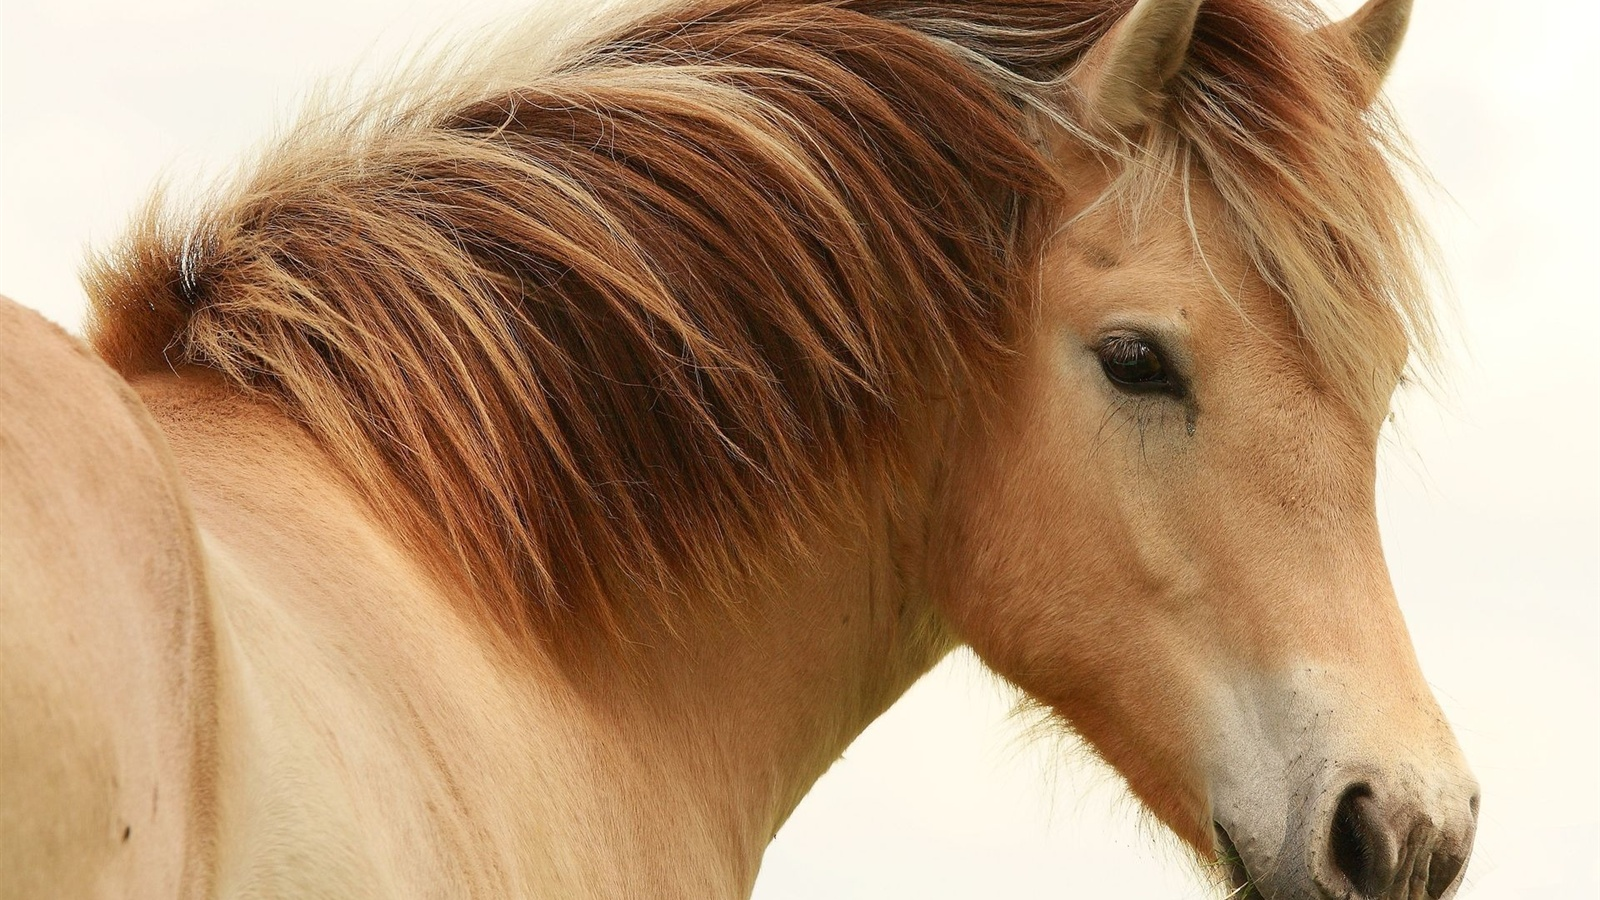 Horse Close Up Wallpaper HD